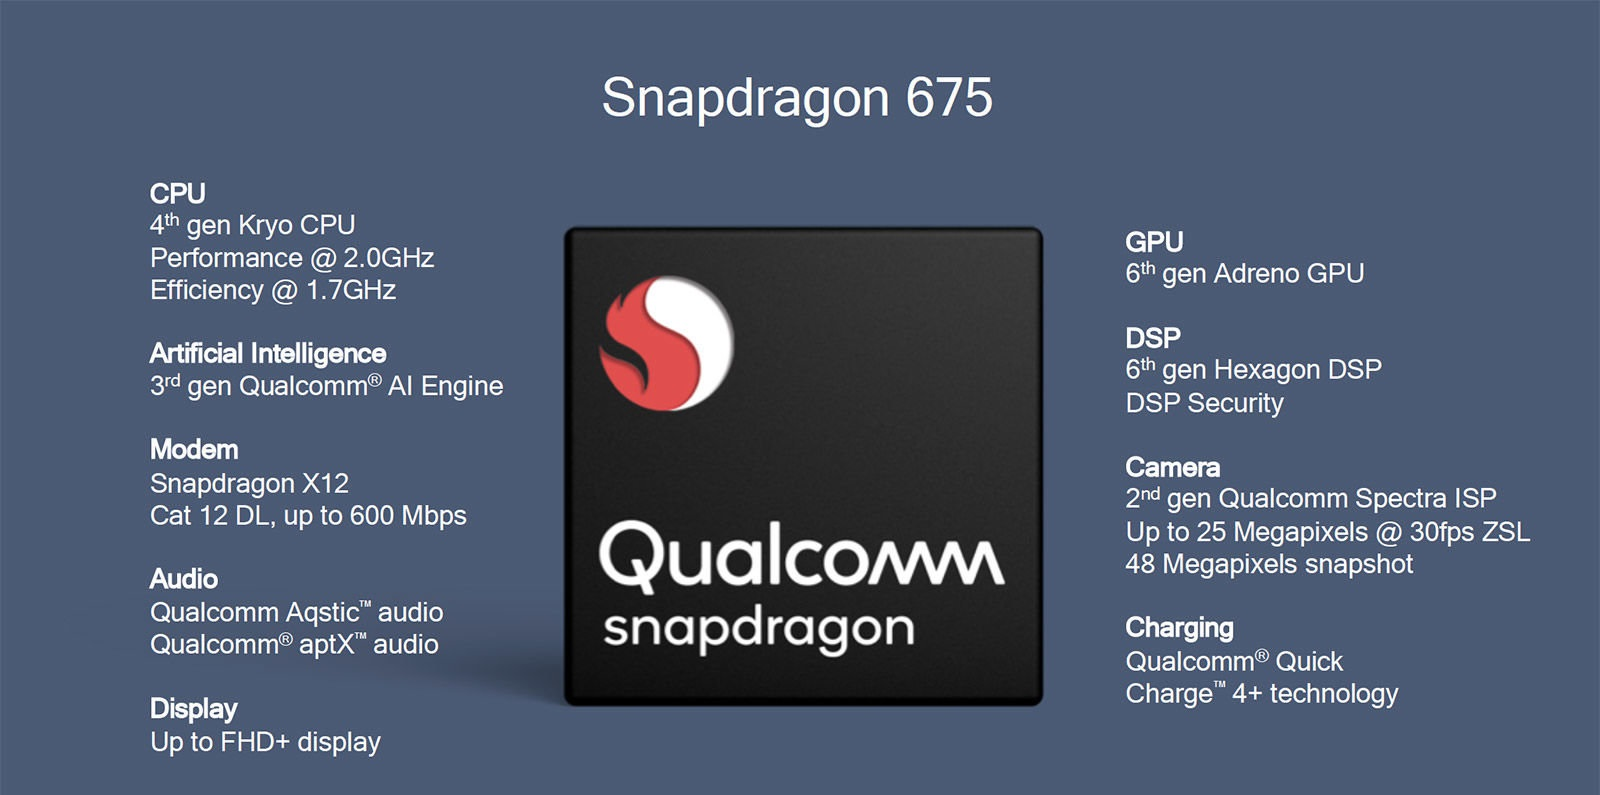 Qualcomm Snapdragon 675 vs Snapdragon 710 - Naslovna